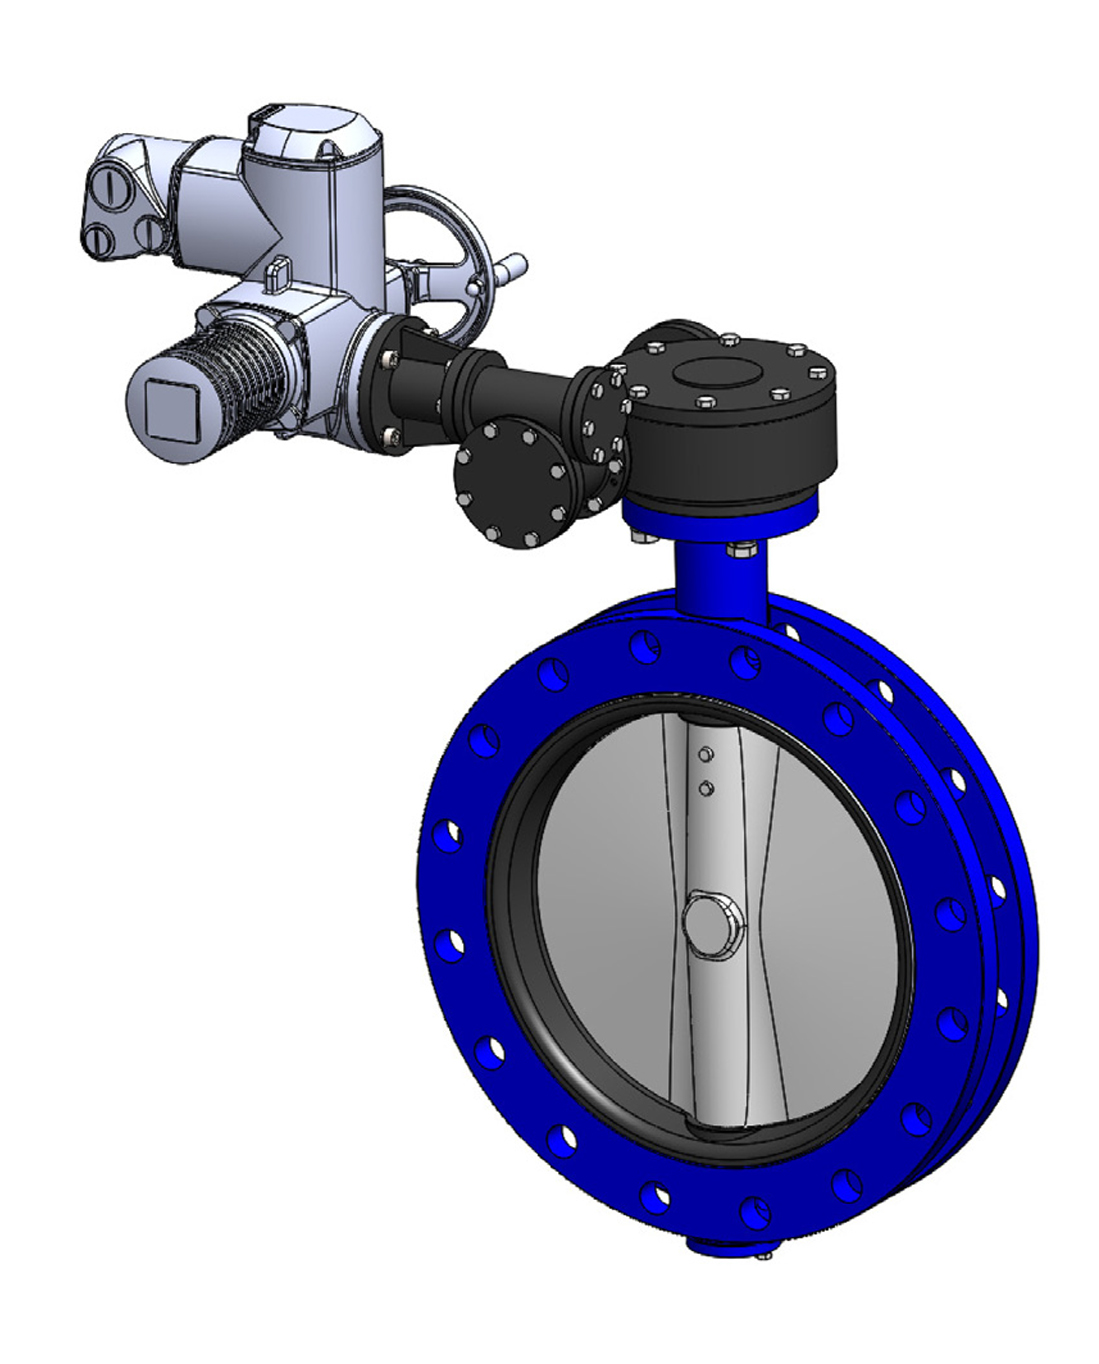 Double flanges type butterfly valve PN10 – ductile iron body – stainless steel disc – AUMA electric operator